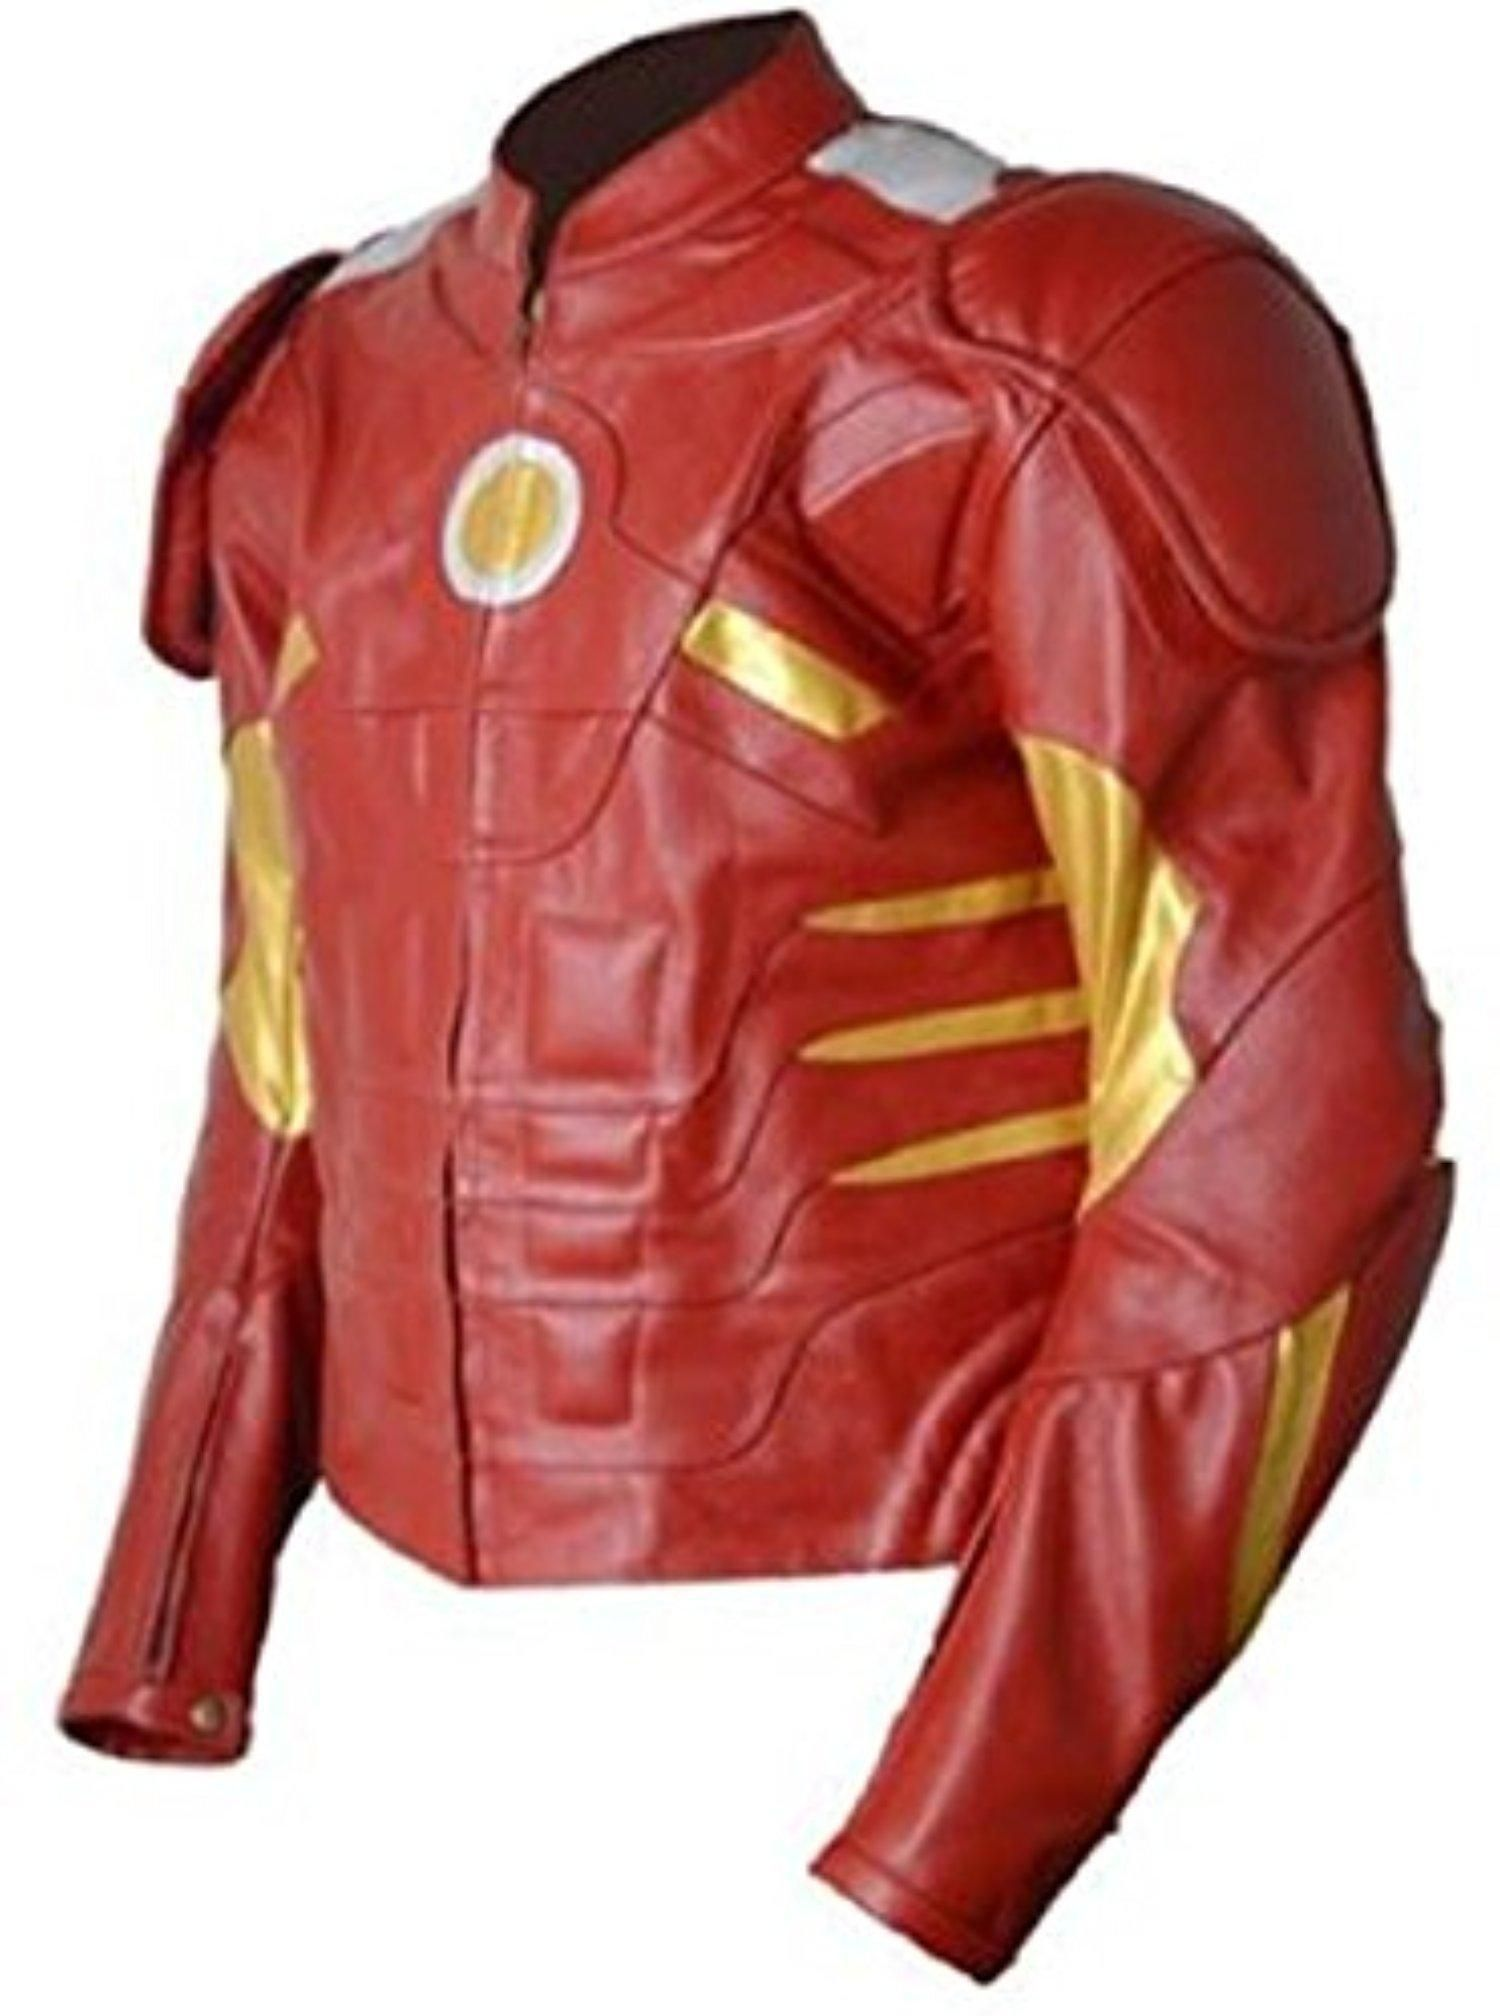 Celebrita X Men S Ironman Leather Motorbike Jacket With Ce Armor Protection Brought To Y Black Leather Jacket Men Motorbike Jackets Mens Leather Jacket Biker